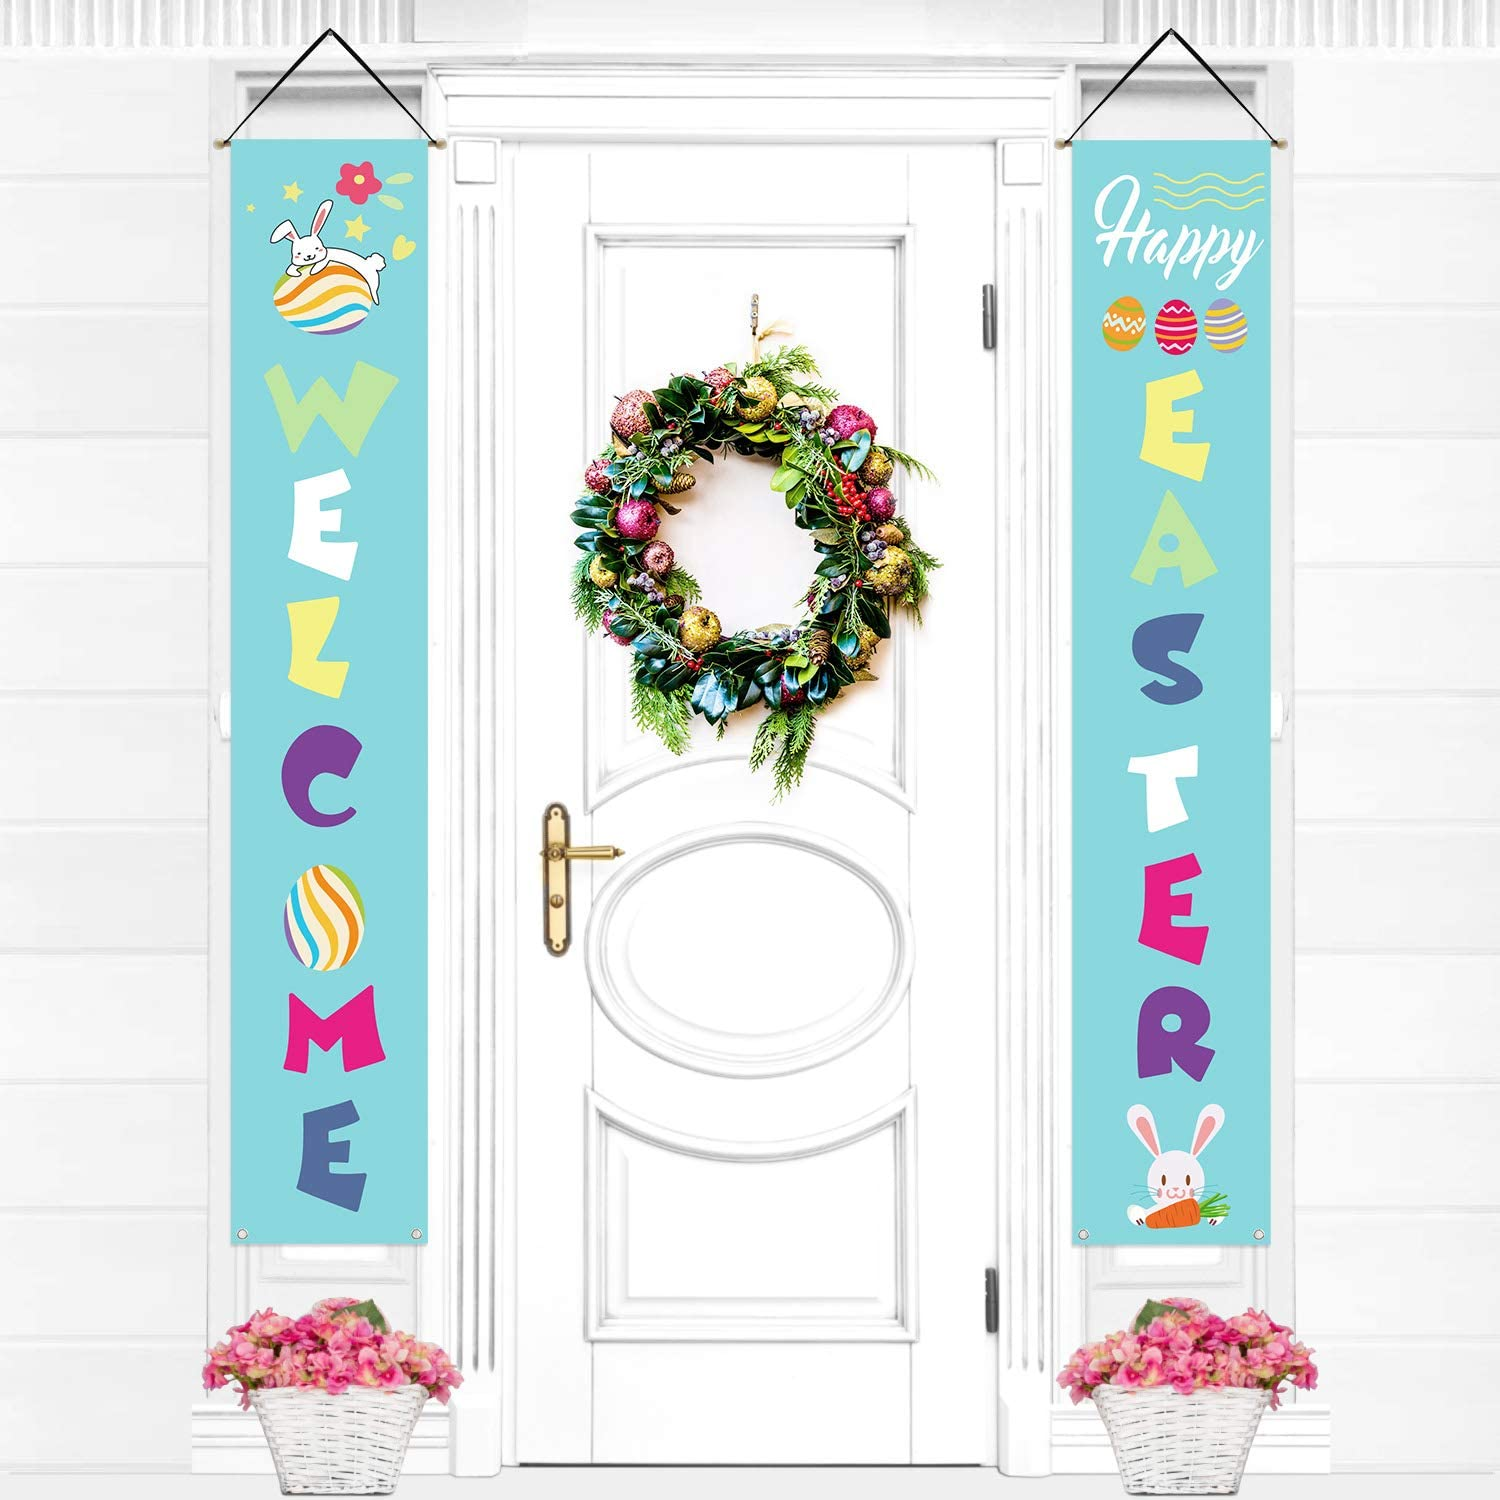 EAONE Easter Decorations Easter Porch Sign Vertical Welcome Easter Hanging Banner Easter Poster Door Decor for Home Indoor Outdoor Decoration, Blue